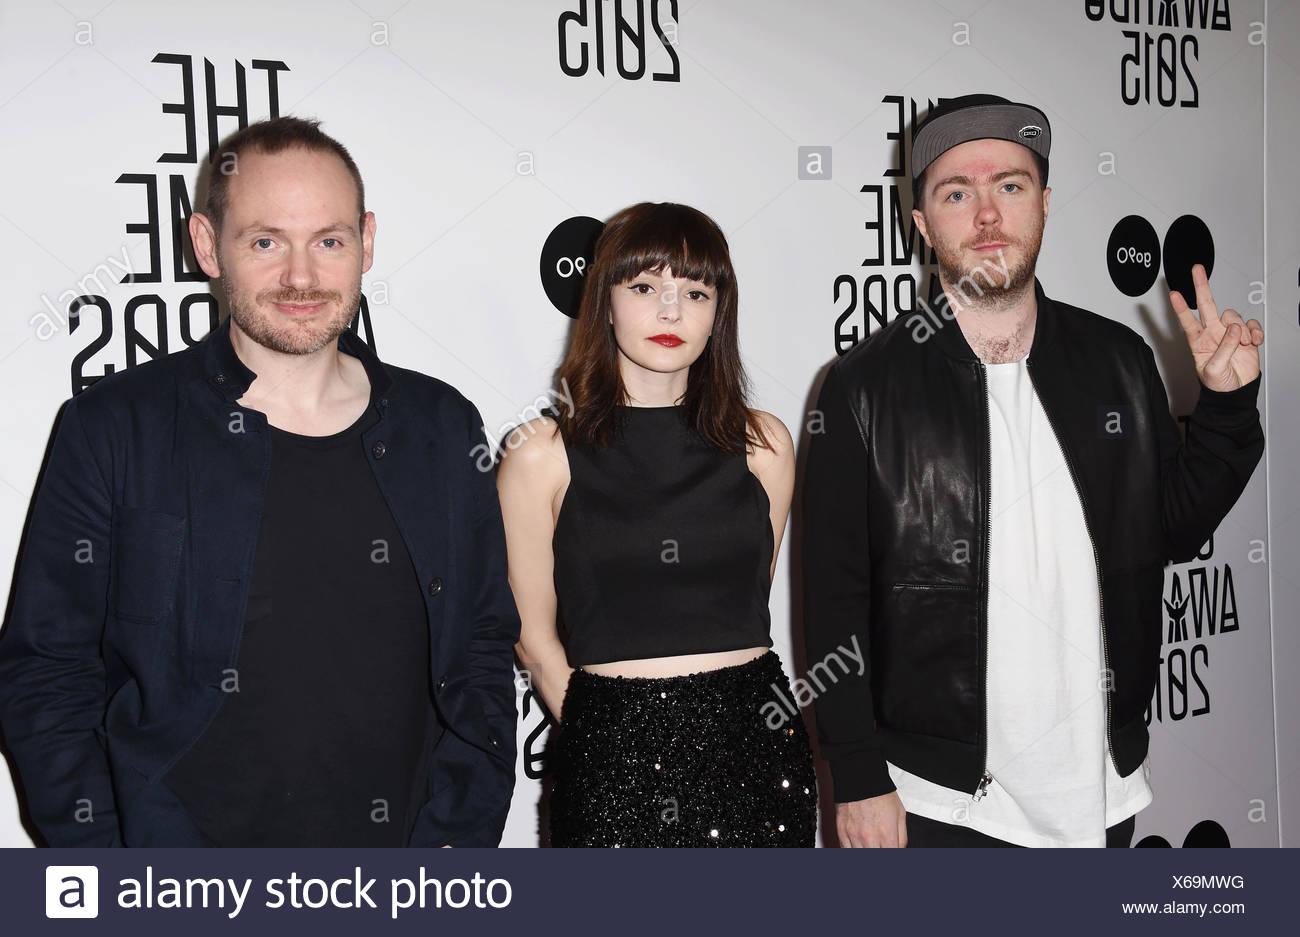 (L-R) Musicians Martin Doherty, Lauren Mayberry and Iain Cook of Chvrches arrive at The Game Awards 2015 / Arrivals at Microsoft Theater on December 3, 2015 in Los Angeles, California., Additional-Rights-Clearances-NA - Stock Image